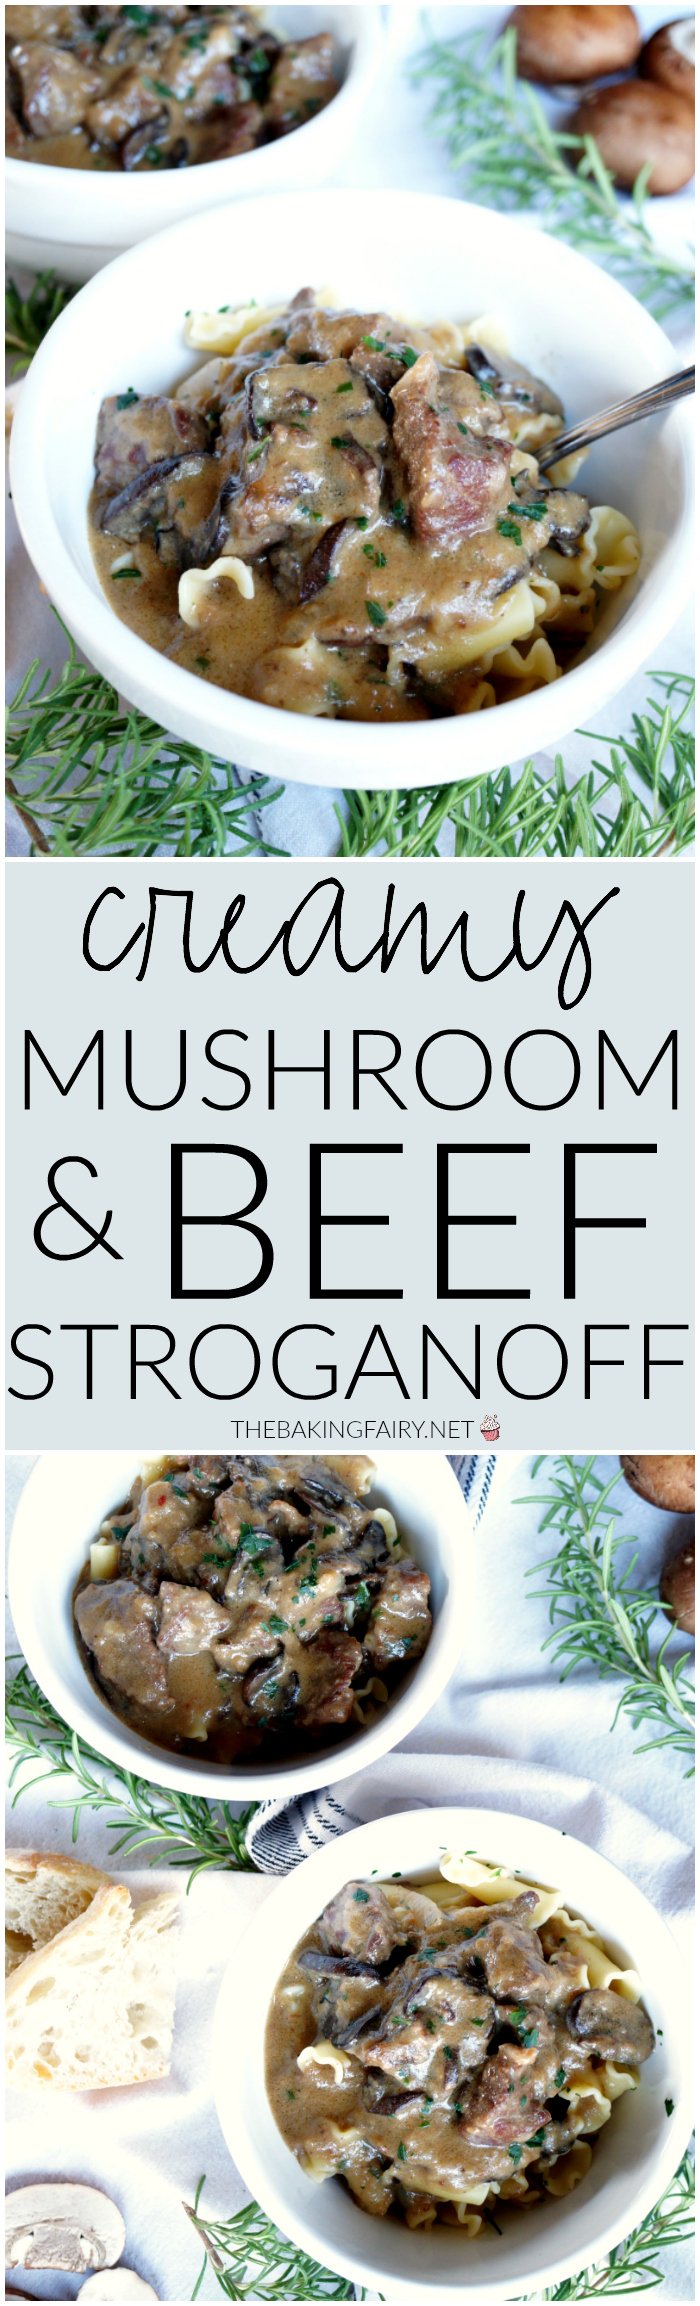 creamy mushroom and beef stroganoff | The Baking Fairy